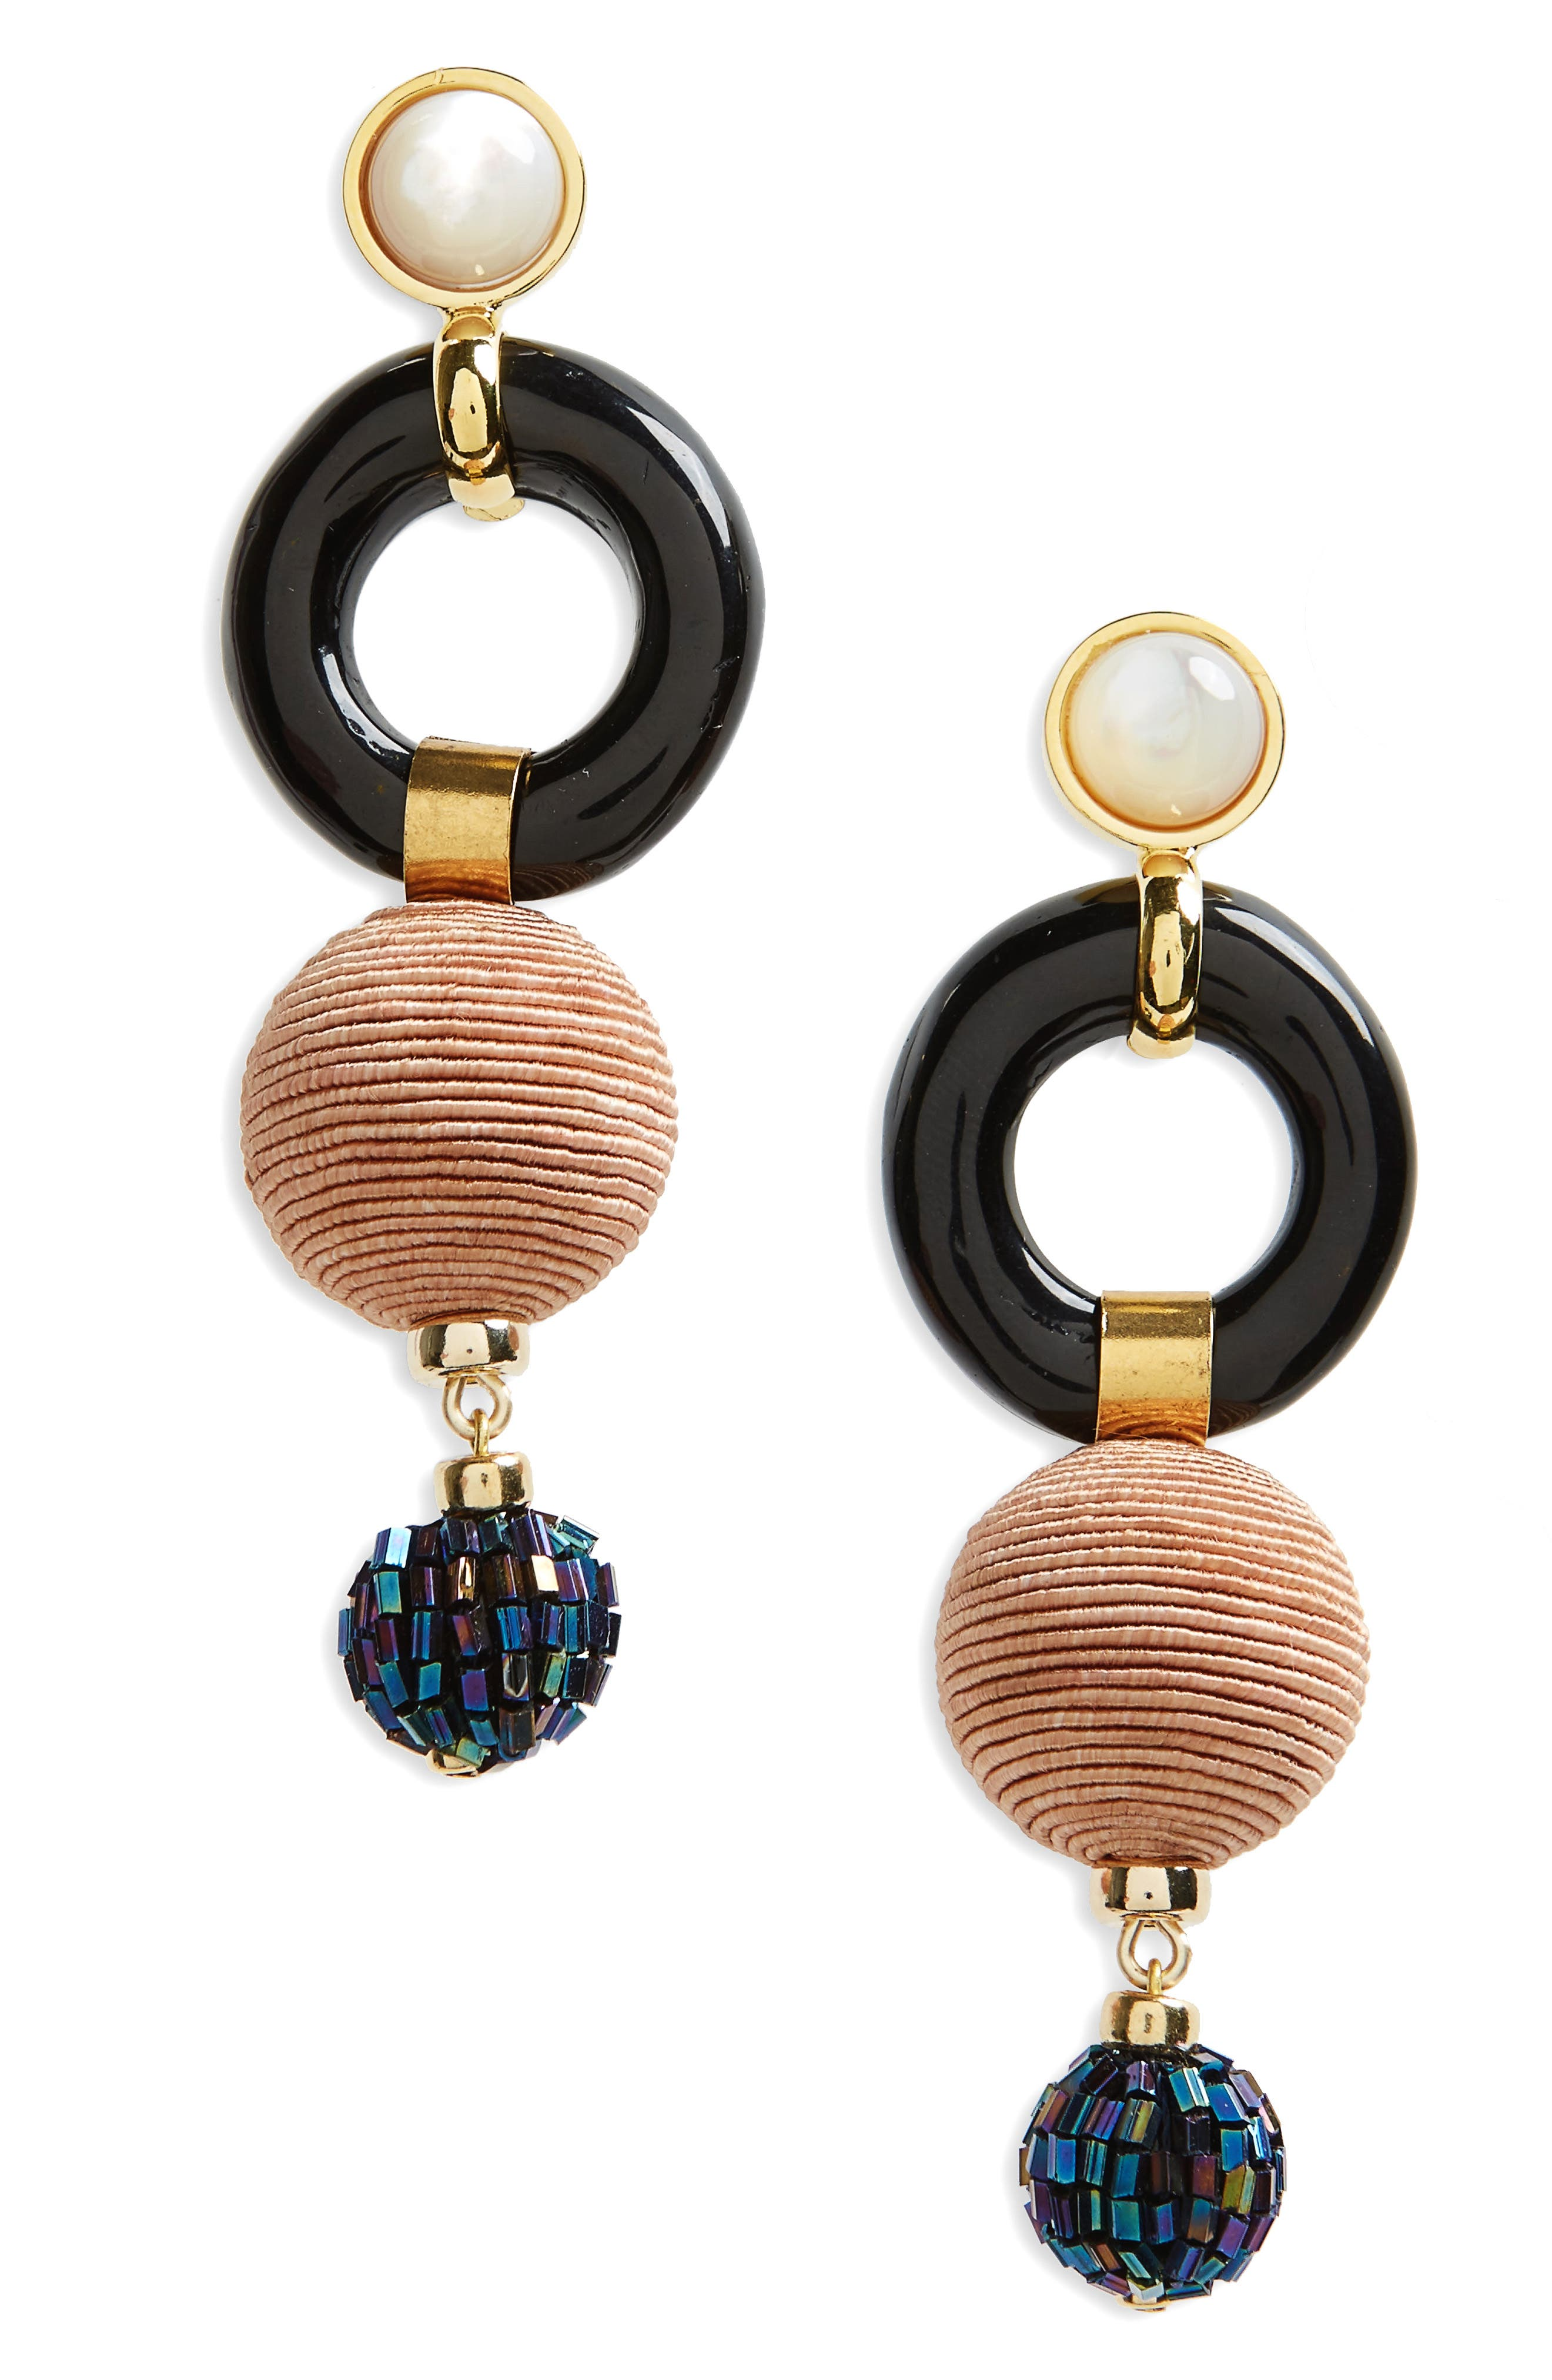 Loop Chain Earrings,                             Main thumbnail 1, color,                             001